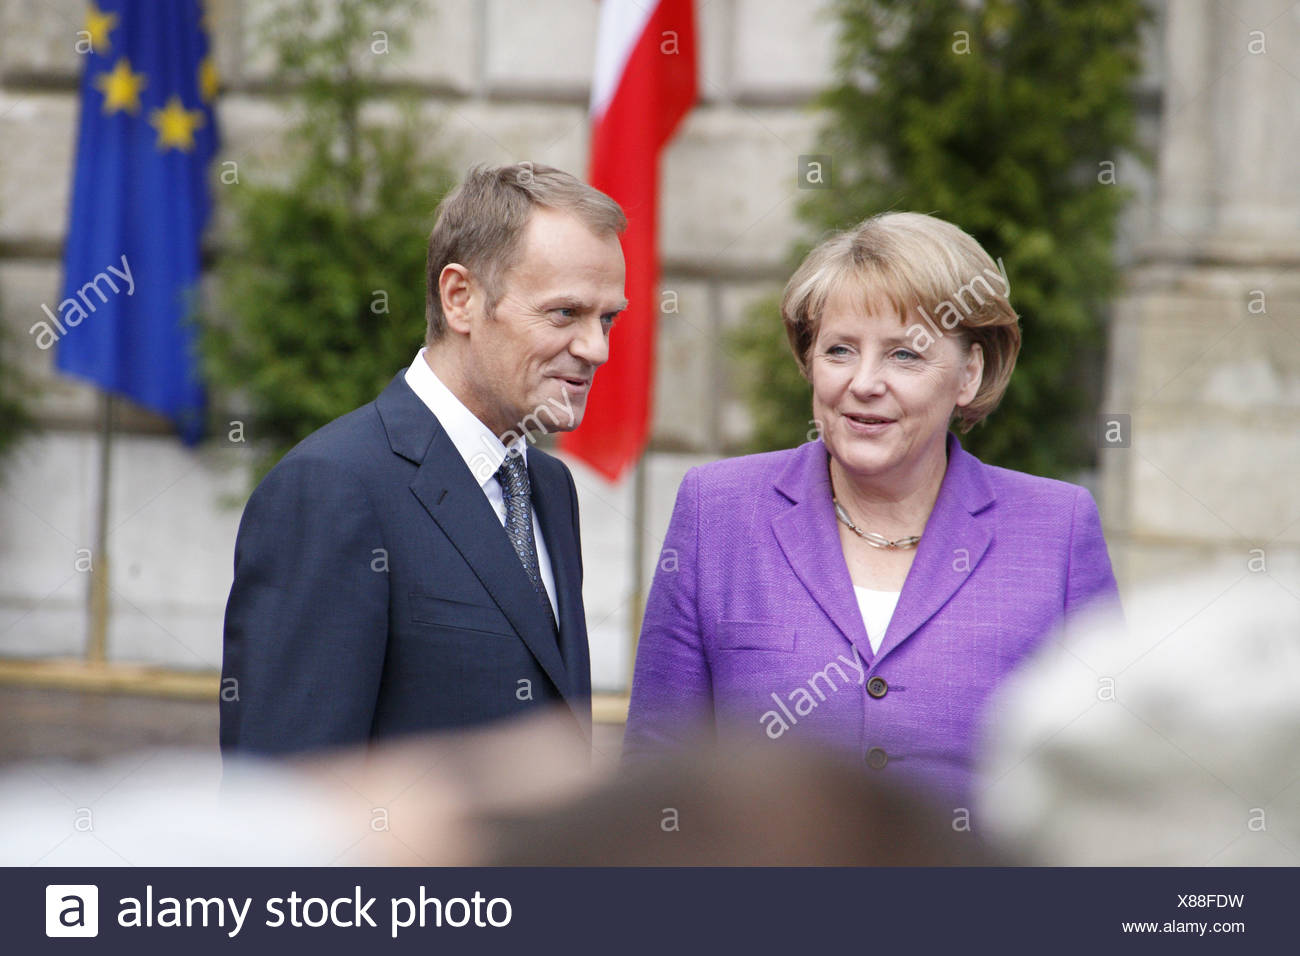 Angela Merkel and Donald Tusk, during the 20th anniversary of the fall of communism, 04/06/2009, in Krakow, Poland, Europe - Stock Image